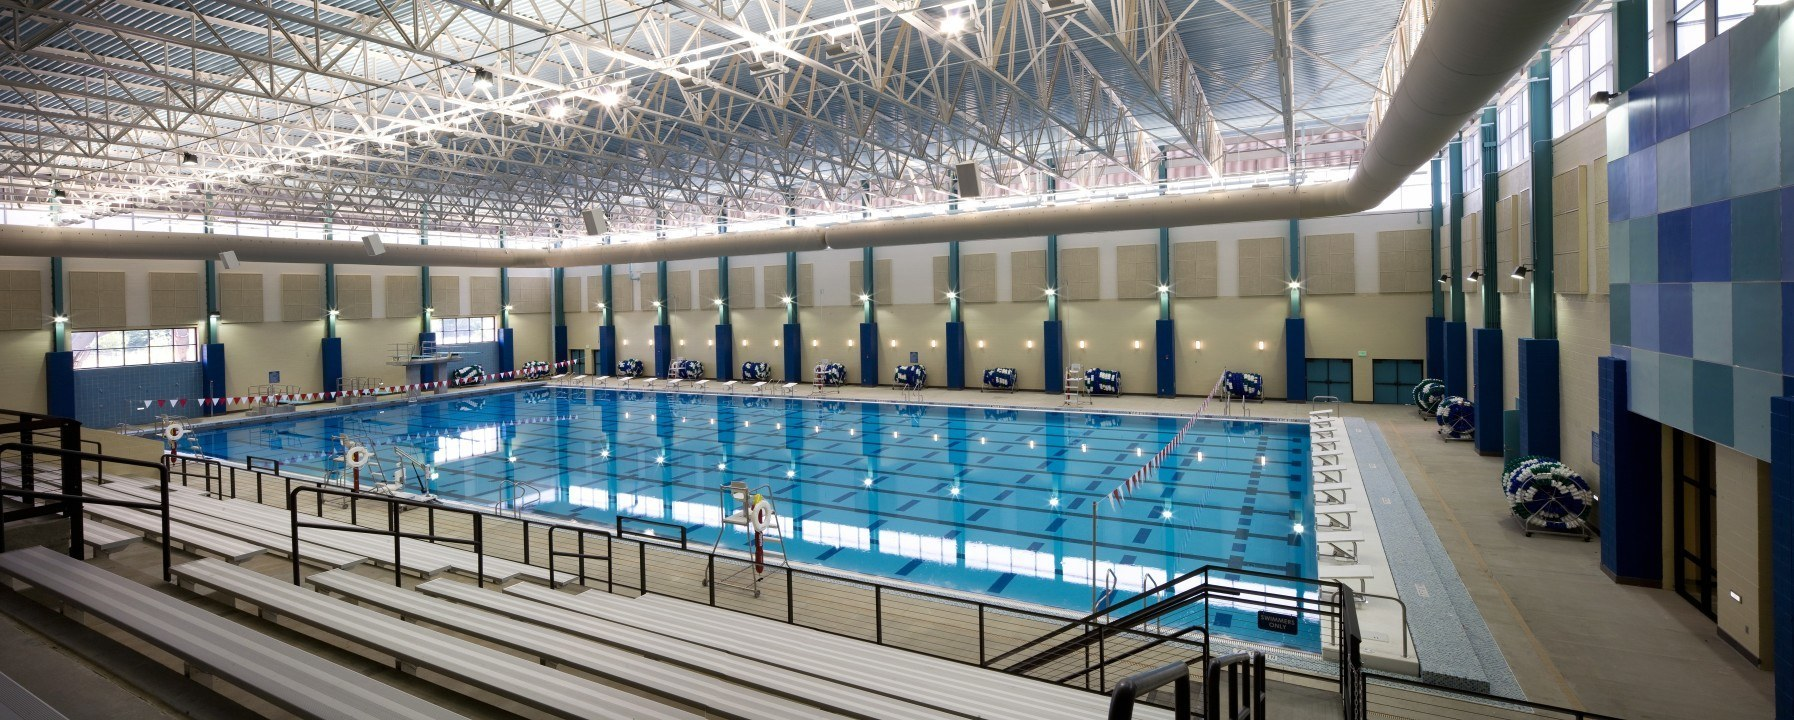 The Modern Competition Pool